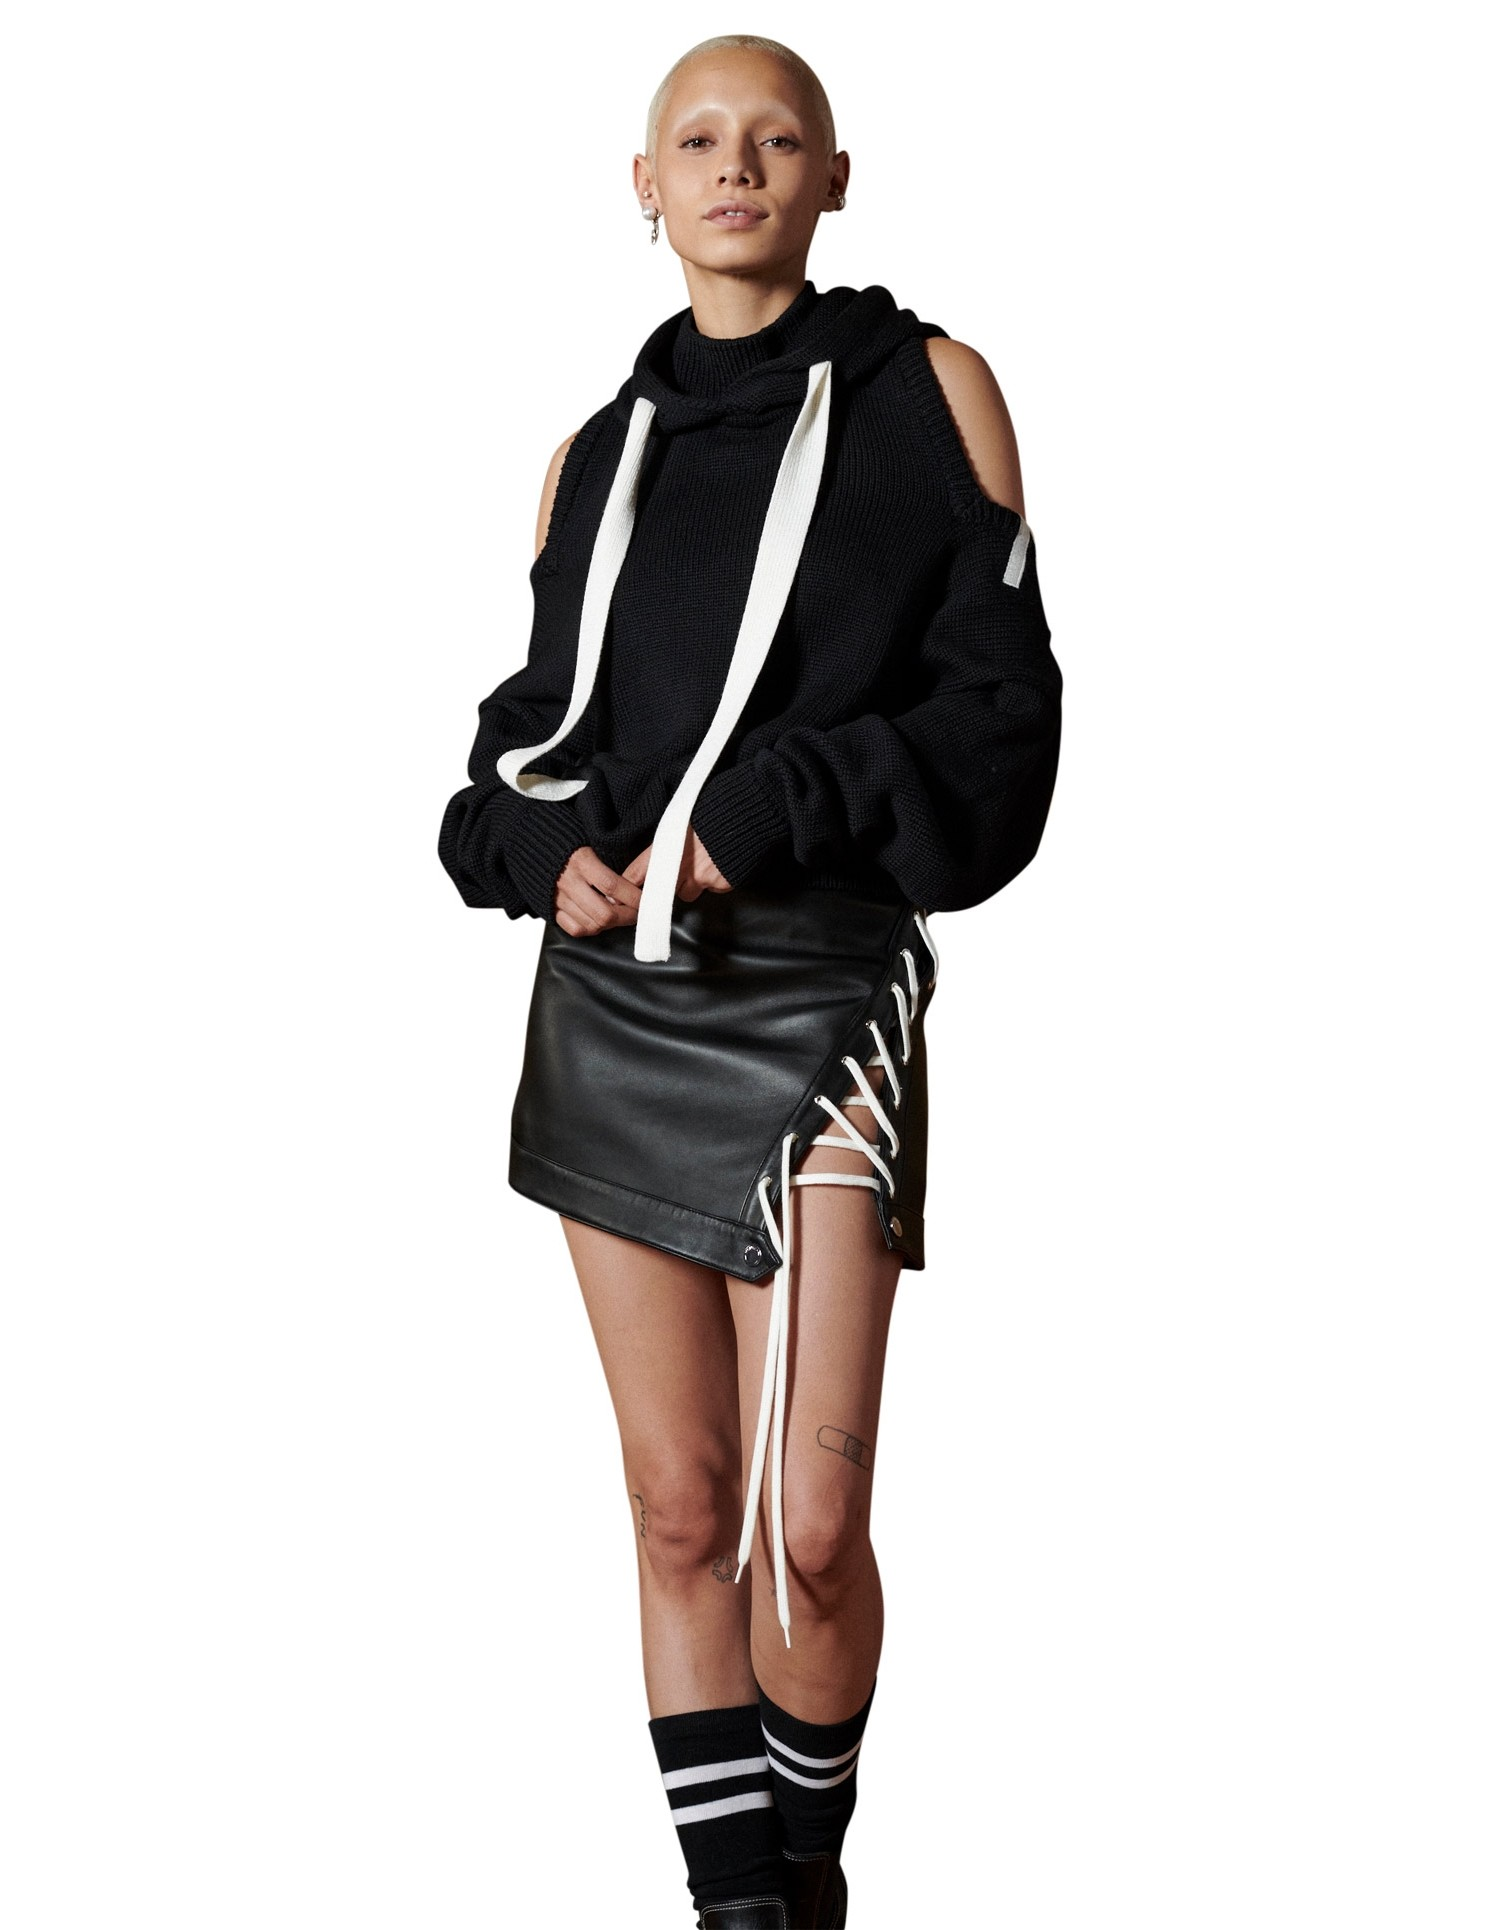 MONSE Lace Up Leather Mini Skirt in Black on Model Front View